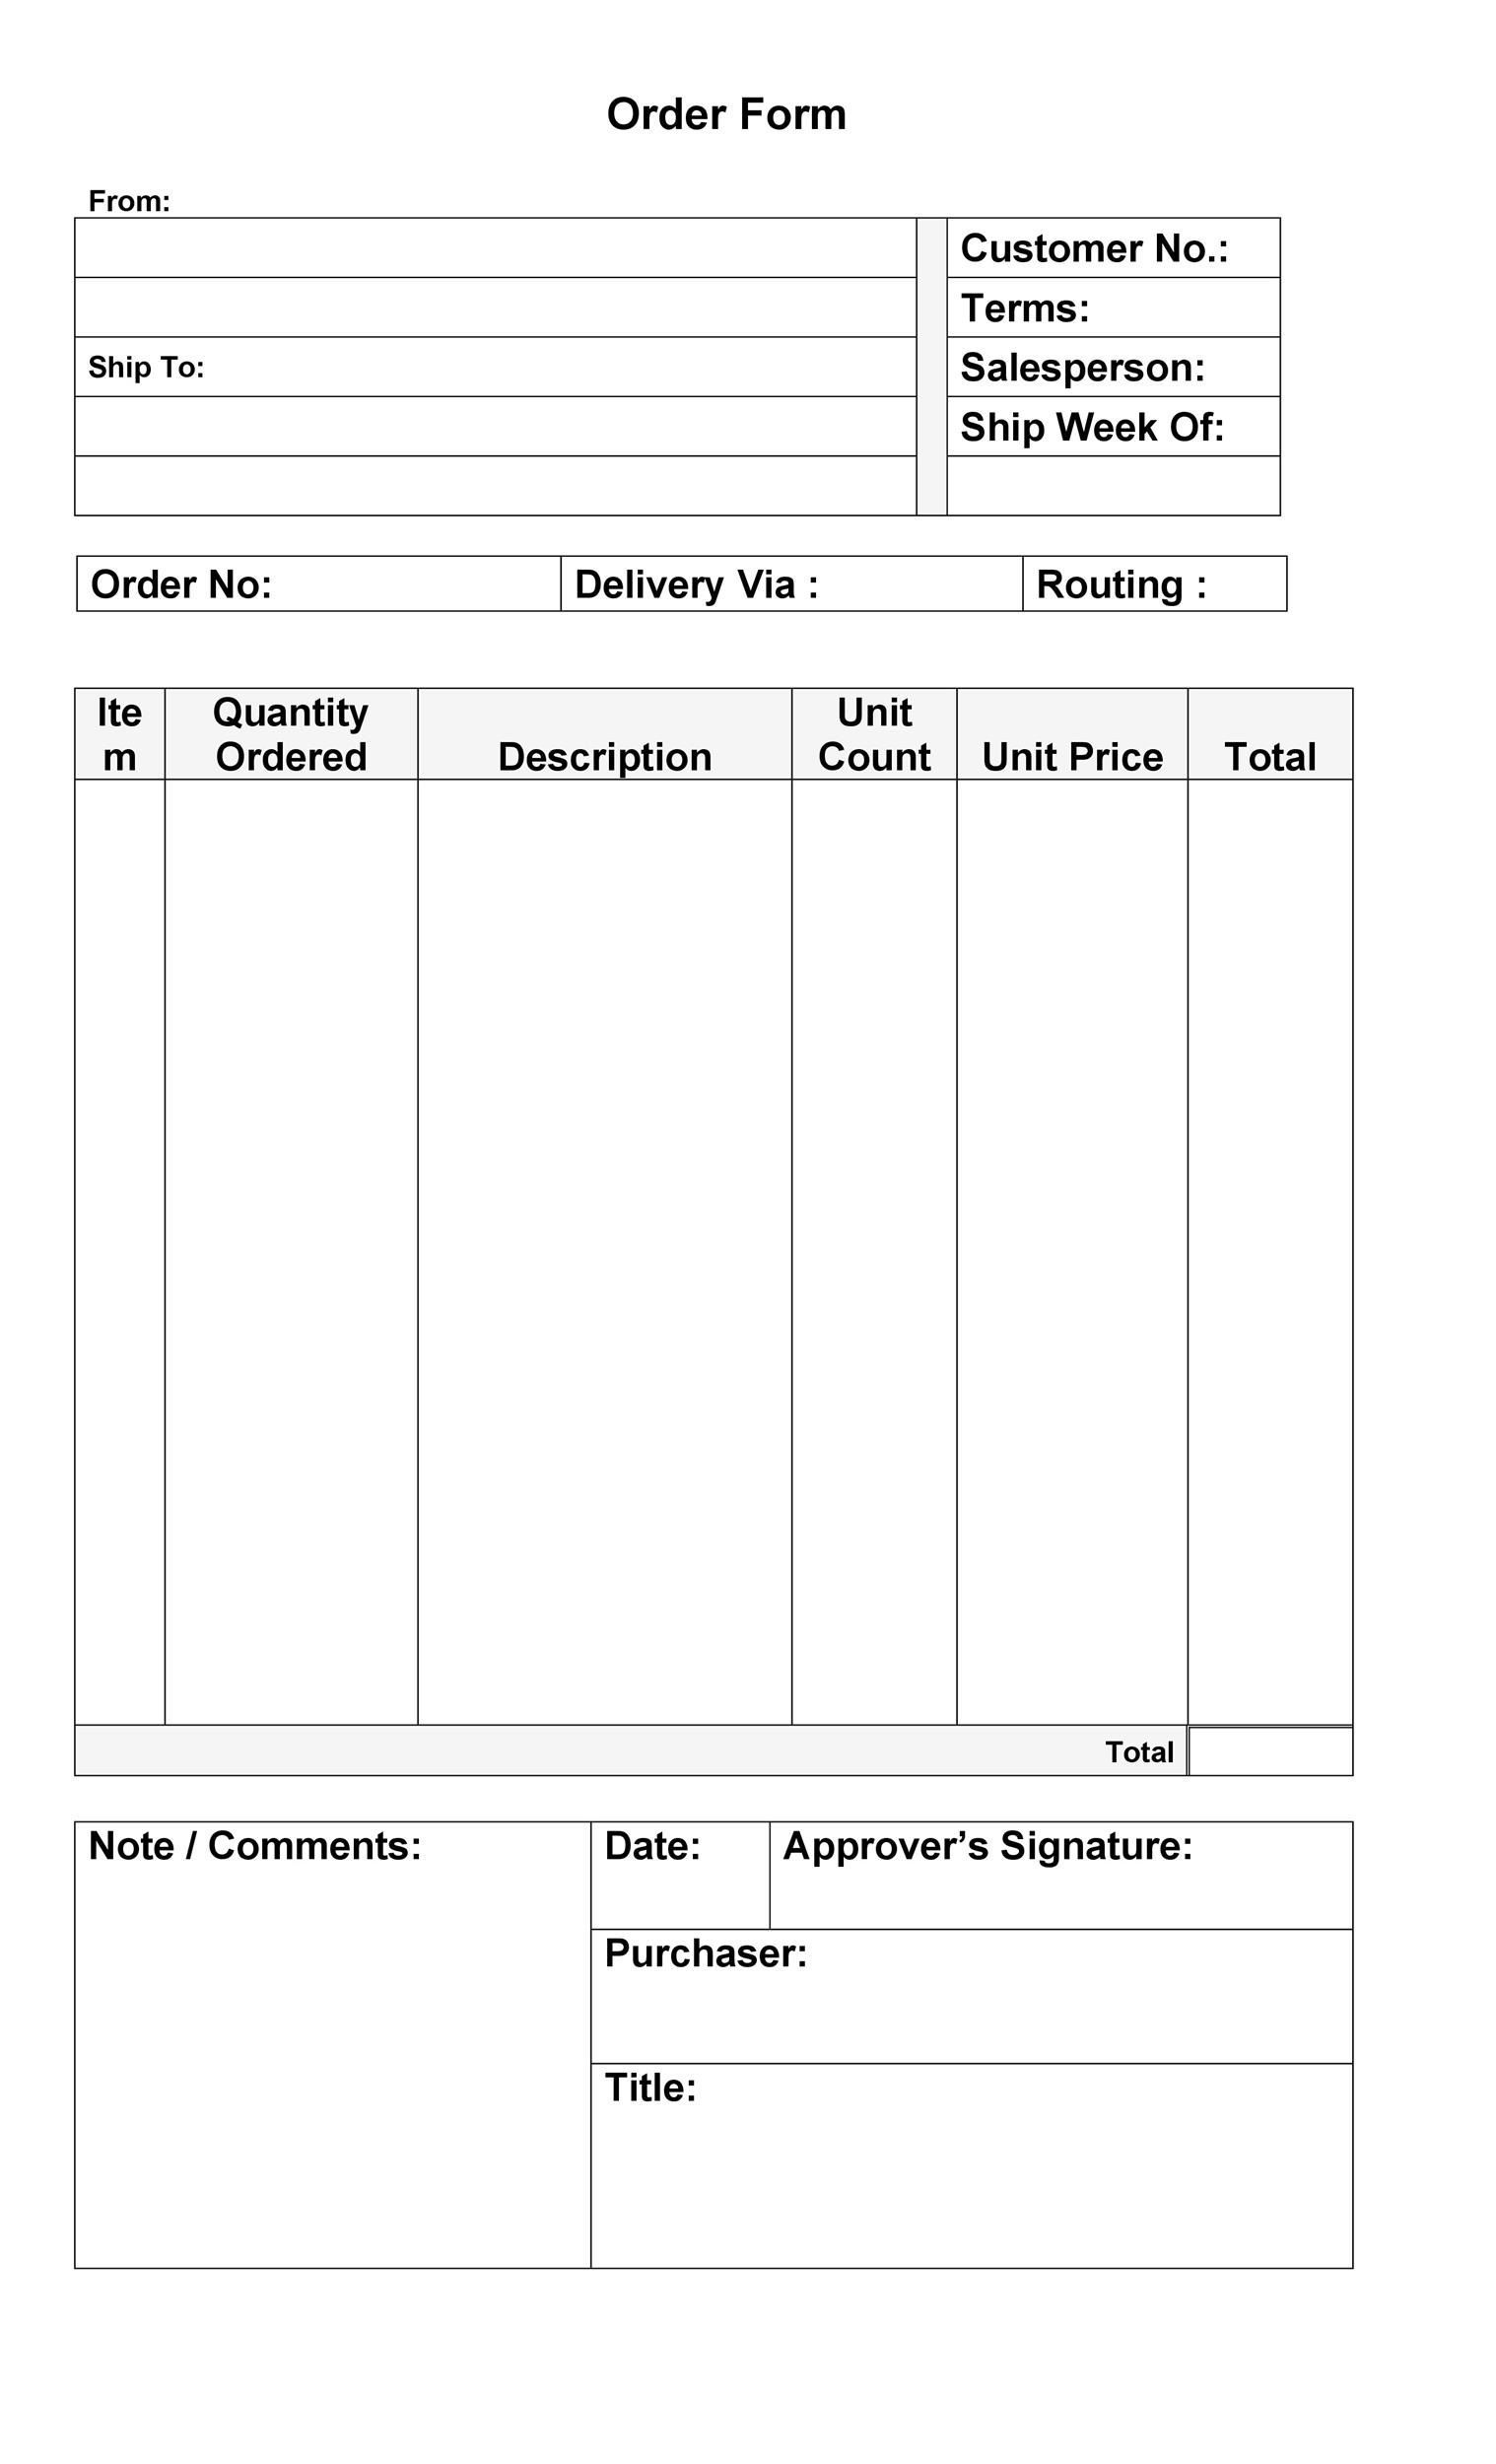 007 Formidable Food Order Form Template Word Highest Clarity Full